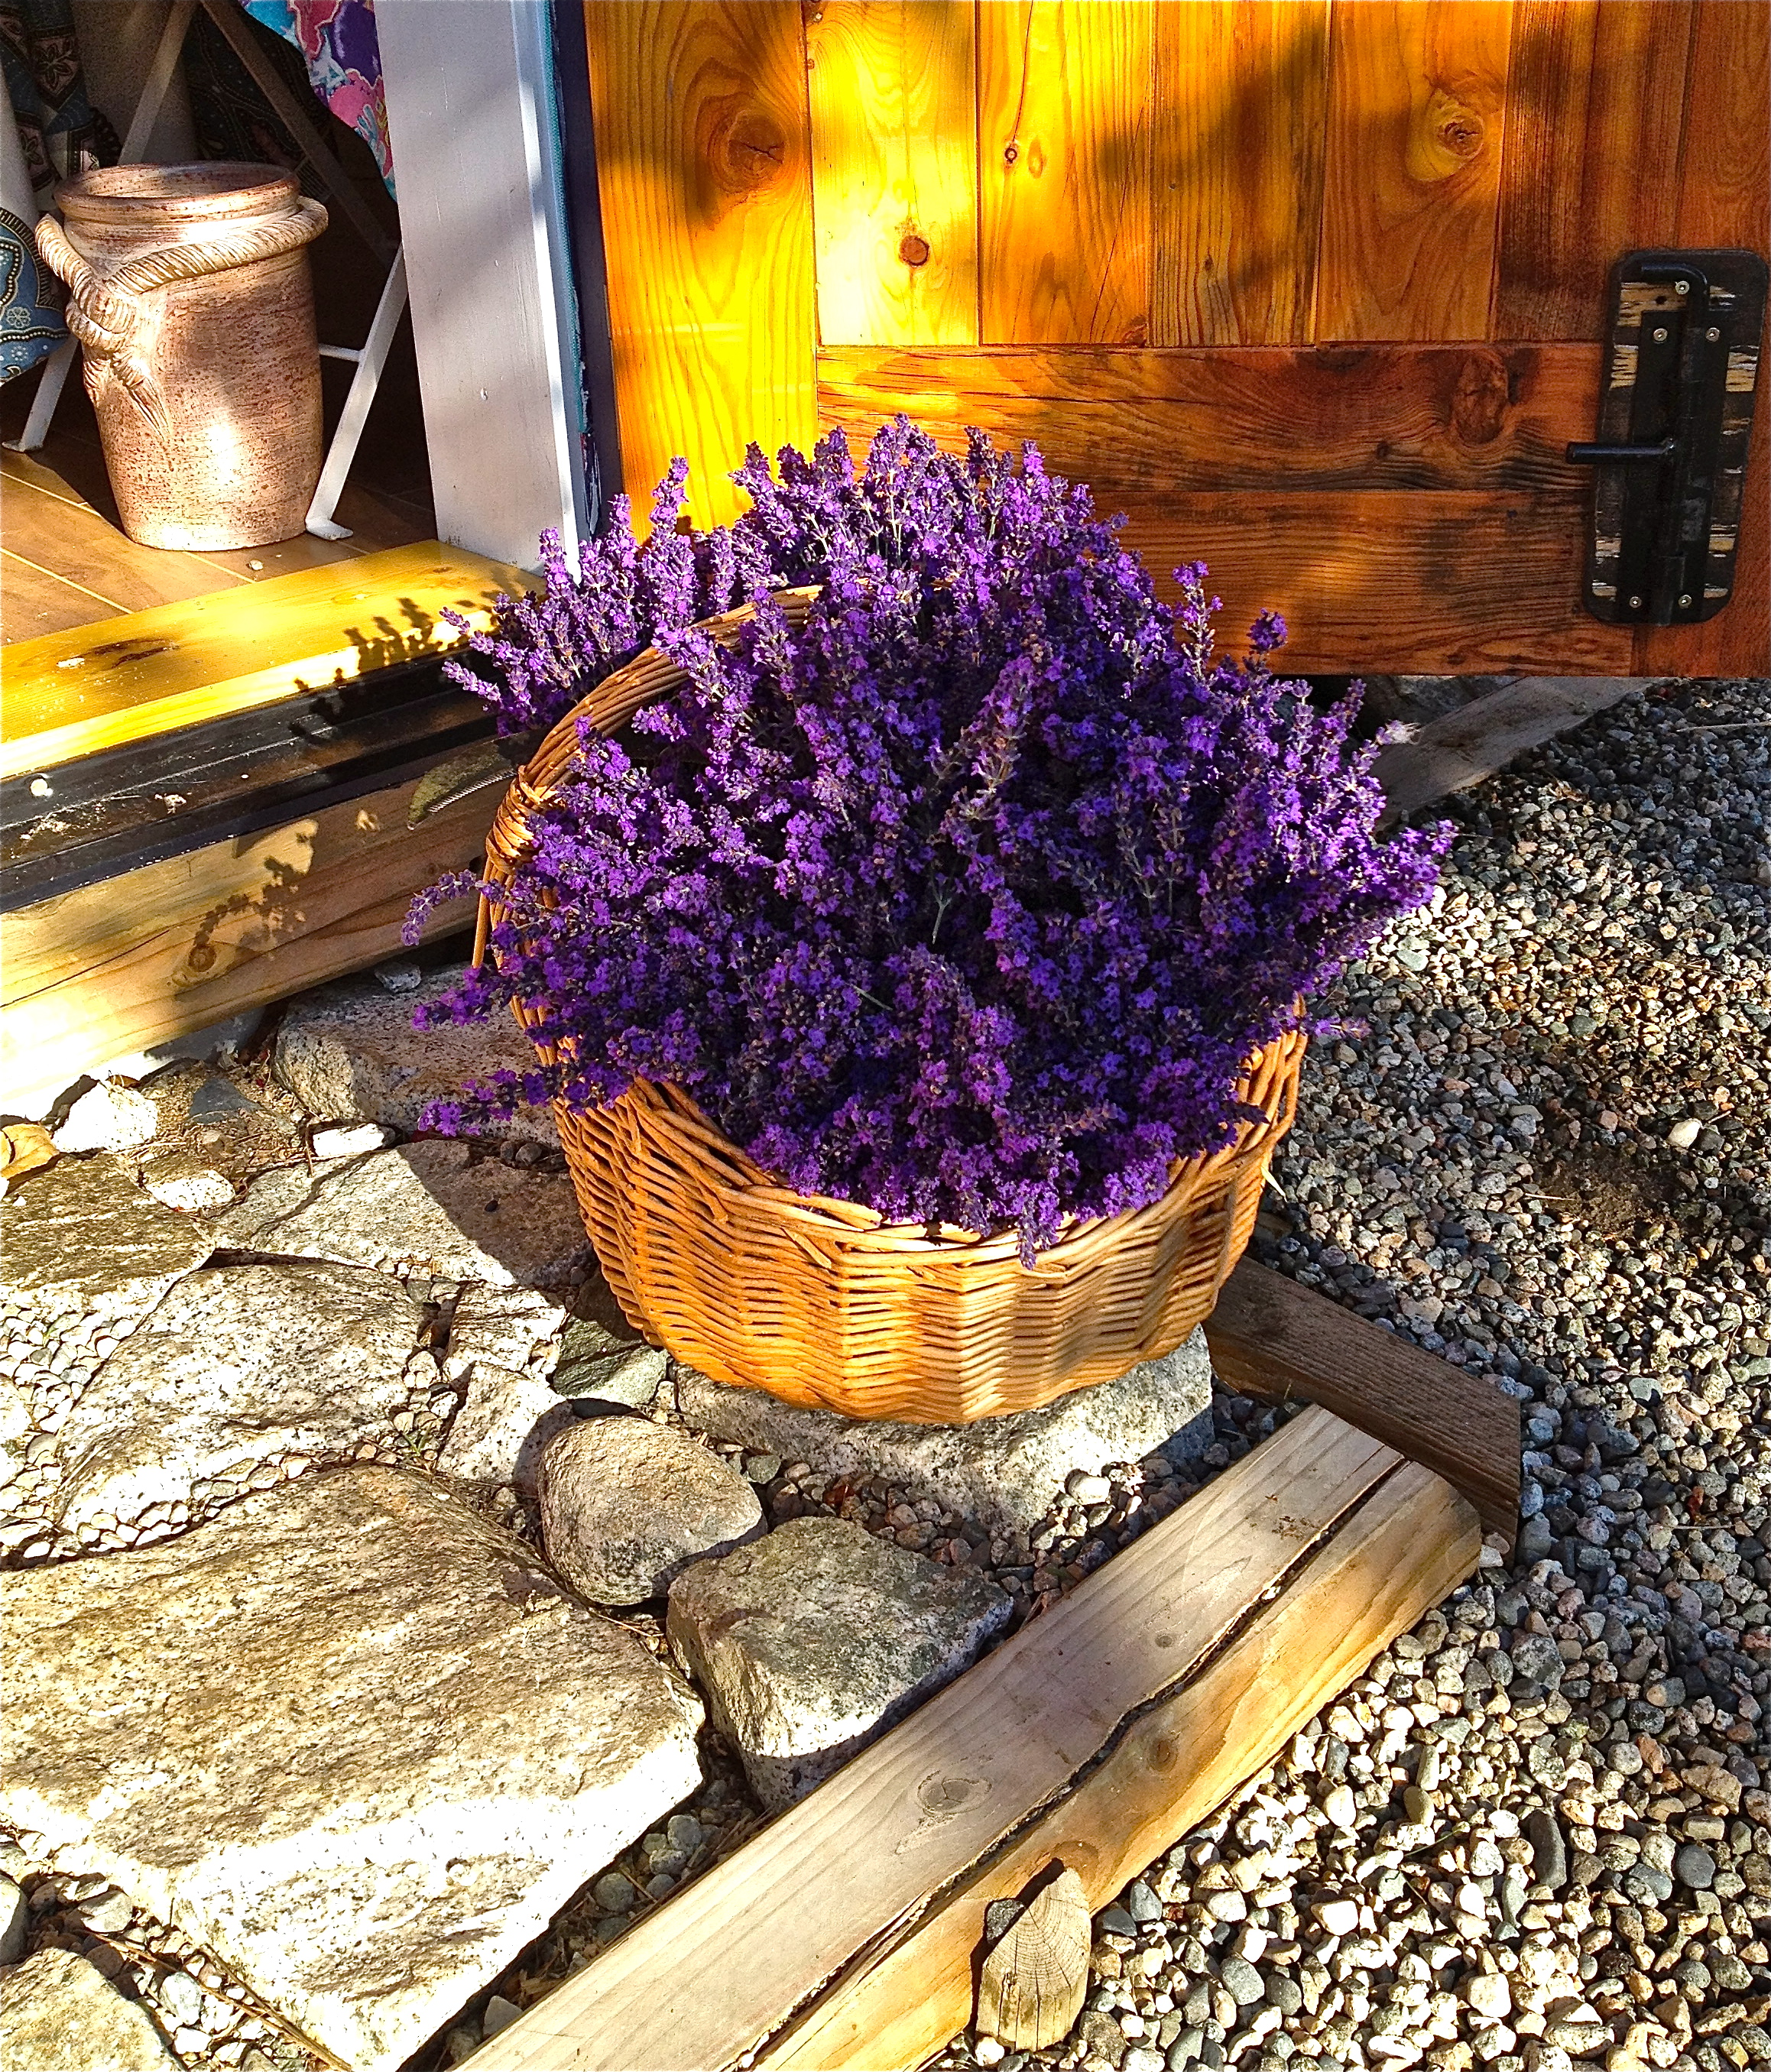 A basket of Royal Velvet Lavender